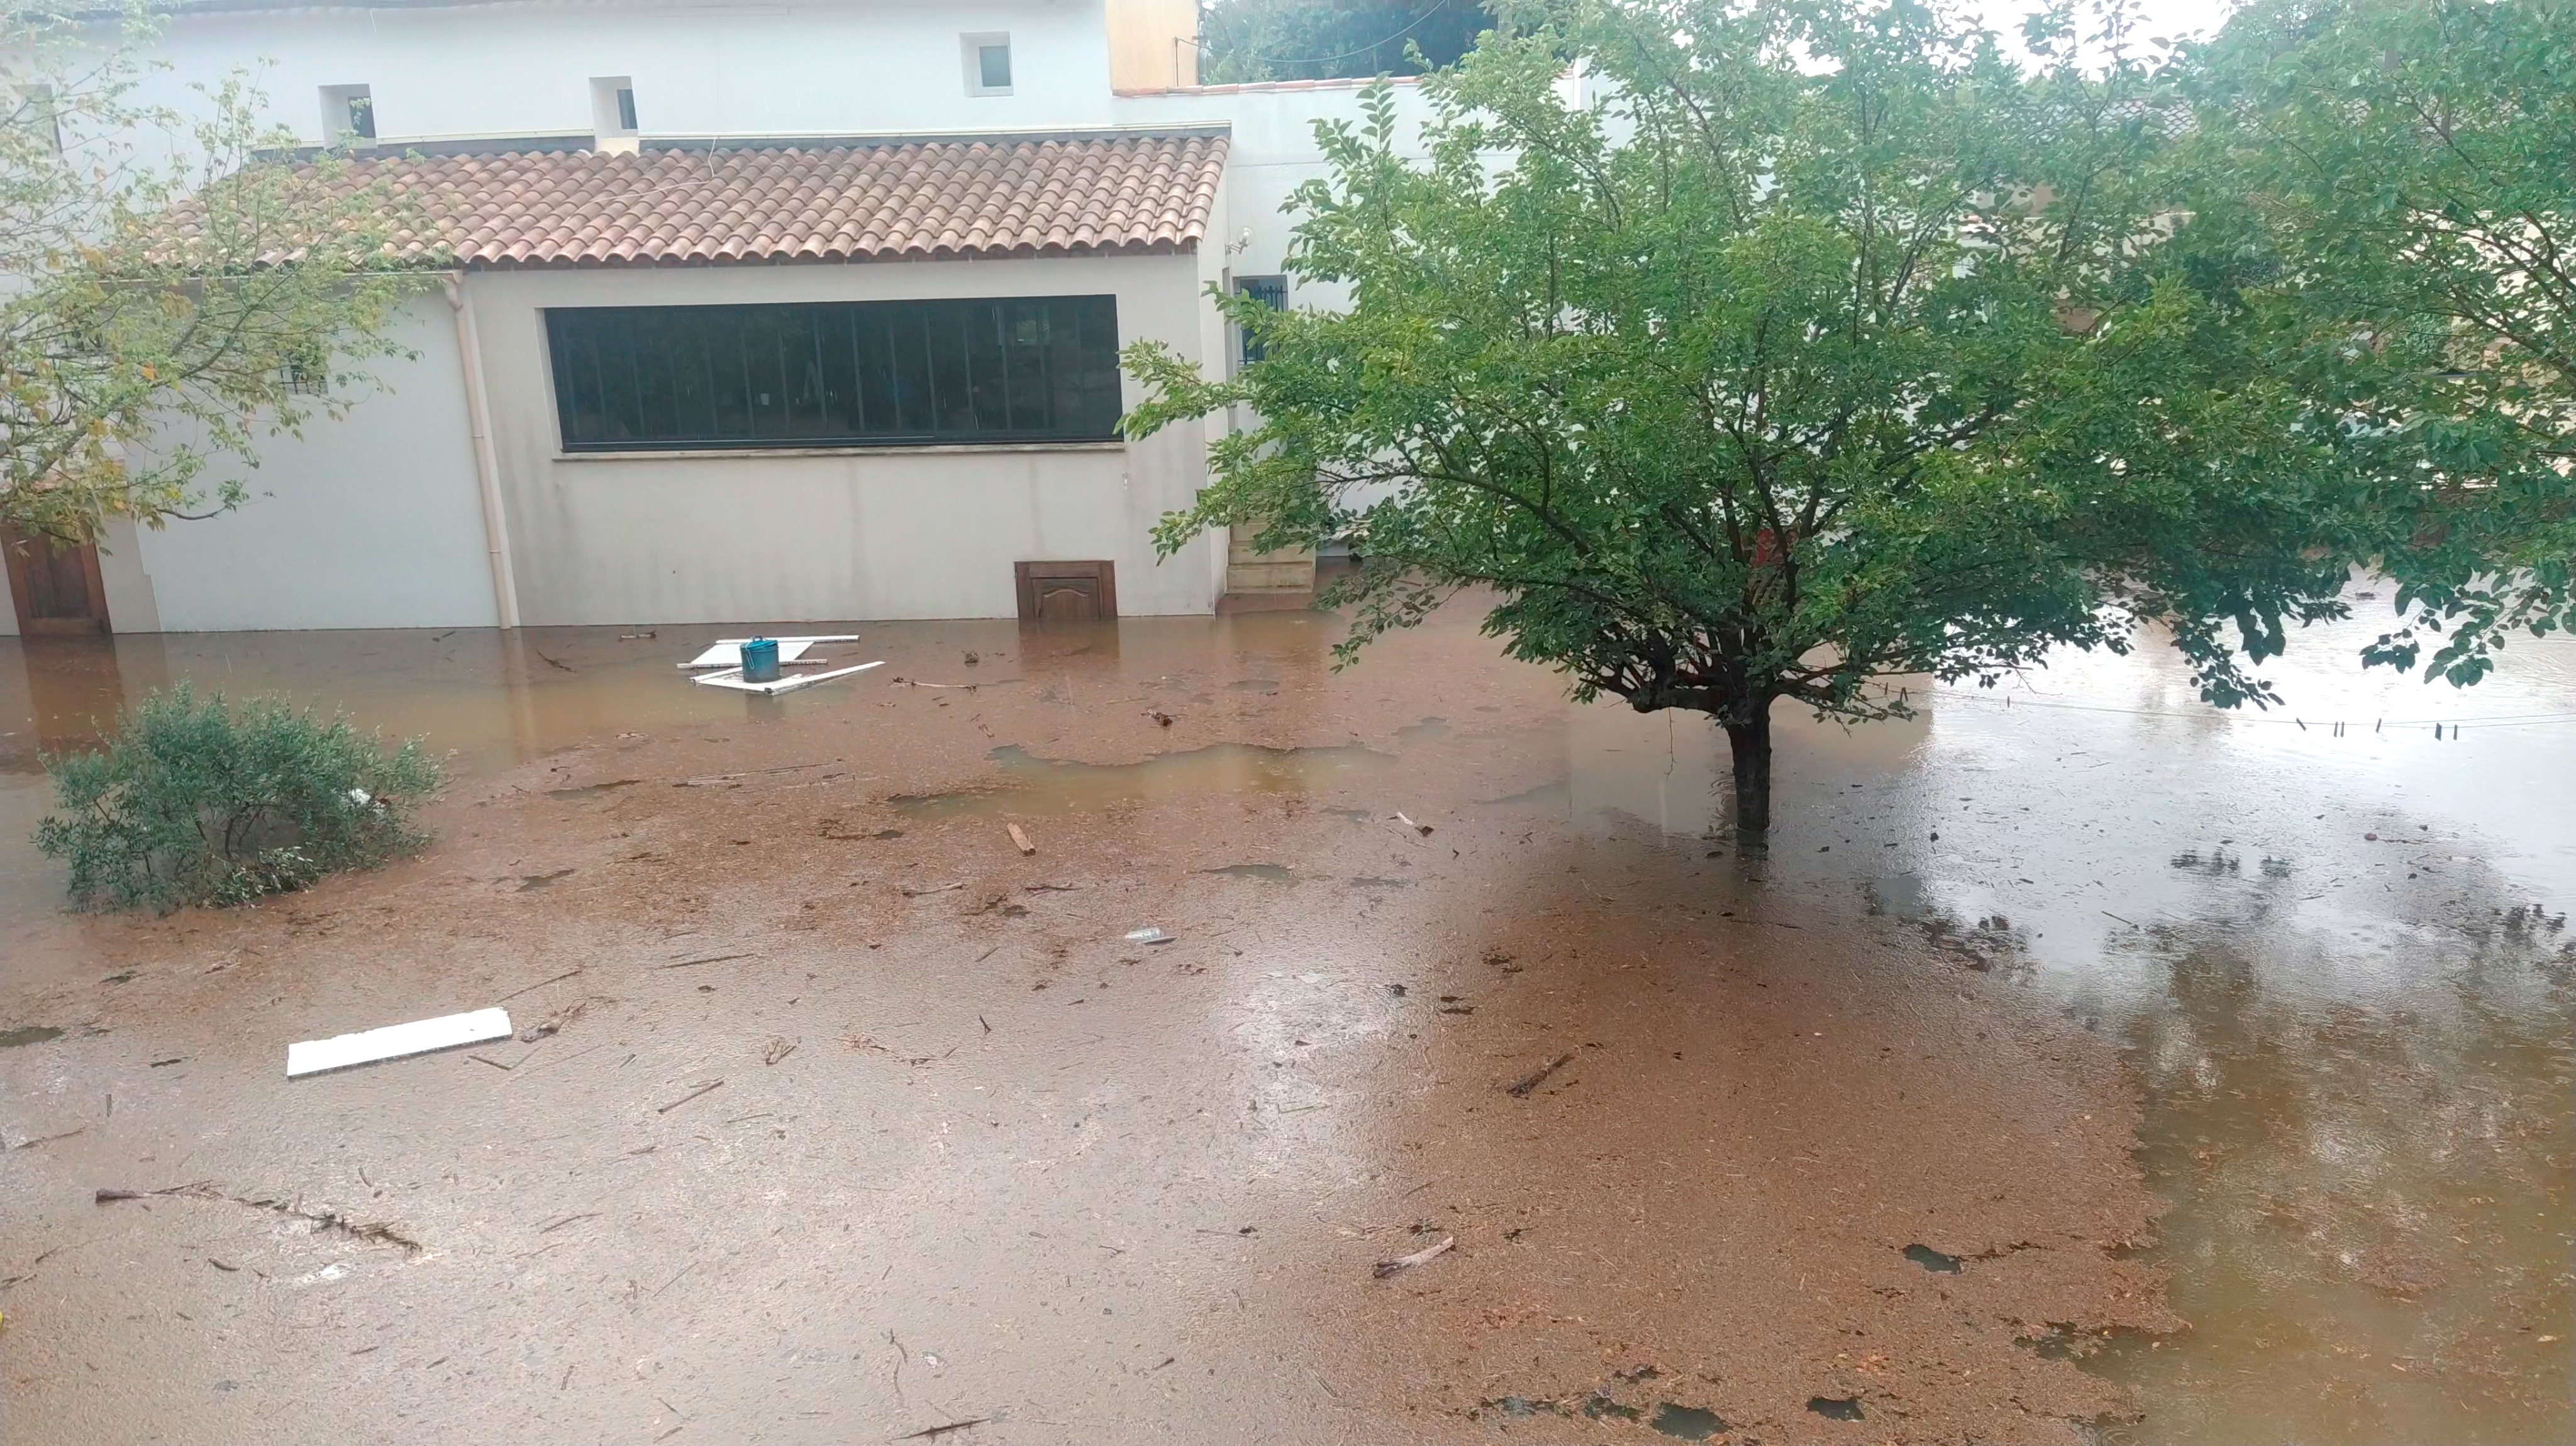 A tree stands amongst flood waters in Aigues-Vives, Gard, France September 14, 2021, in this screen grab obtained from a social media video. @STAWIXBLINK/via REUTERS